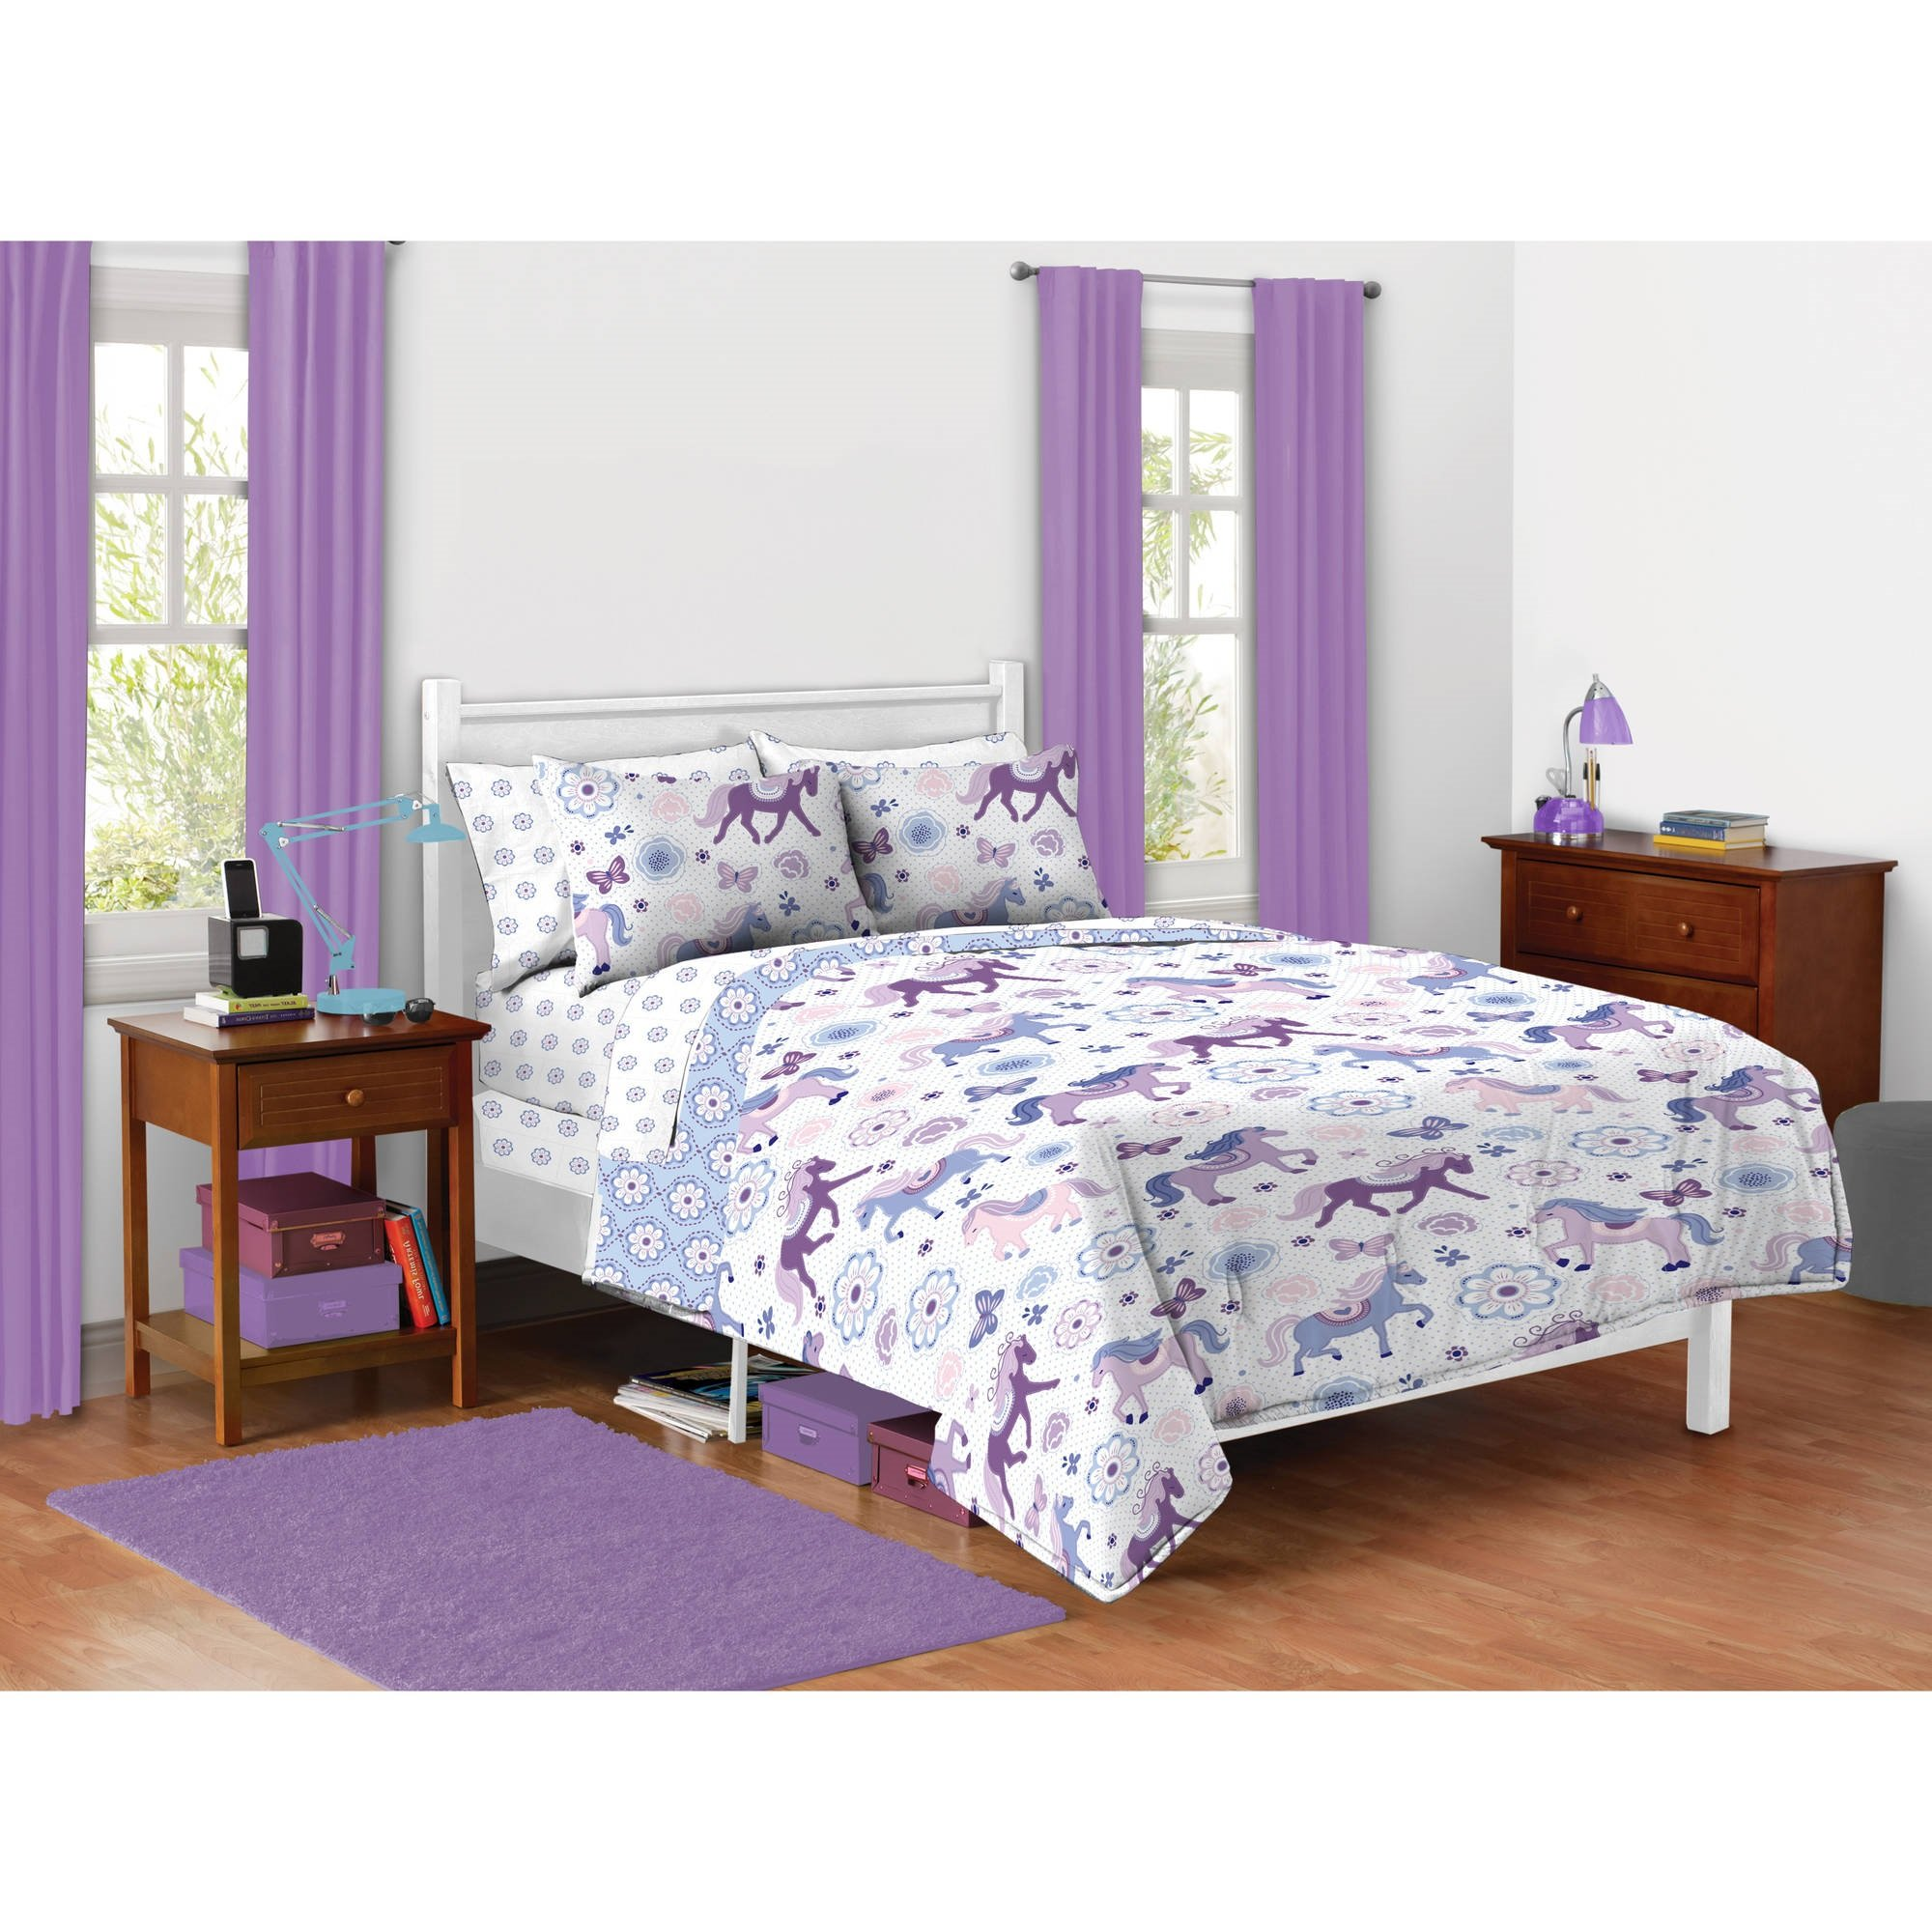 5 Piece Kids Pretty Horses Comforter Twin Set, Girls Beautiful All Over Purple Pony Bedding, Printed Butterflies Daisy Florals, Adorable Cute, Purple White Ponies, Beautiful Flowers